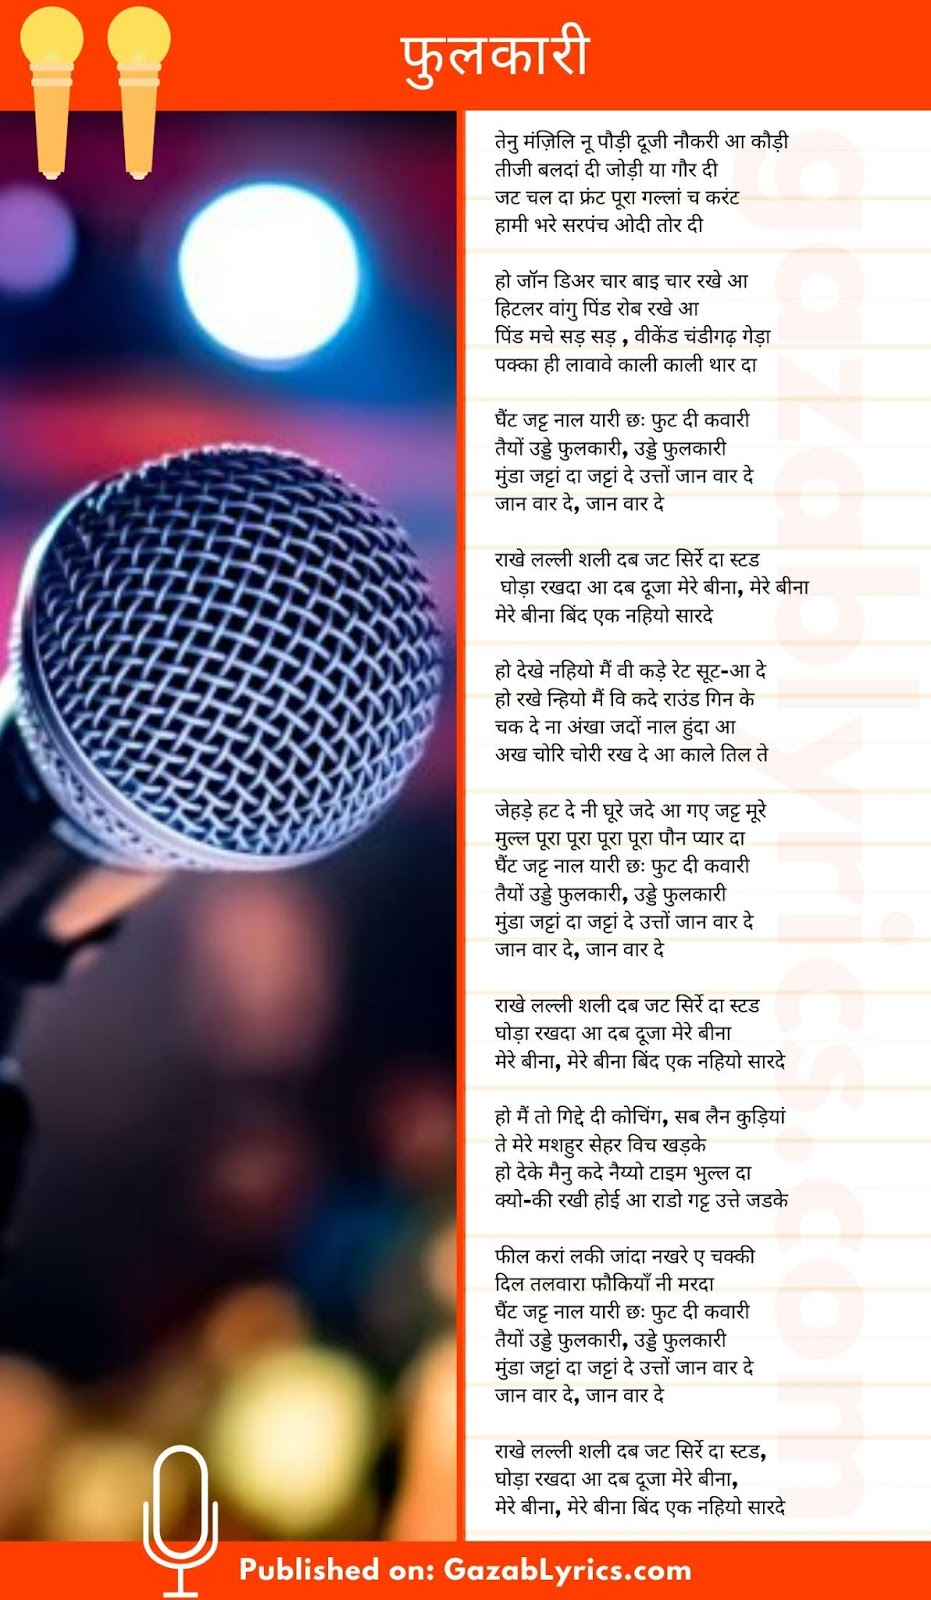 Phulkari song lyrics image